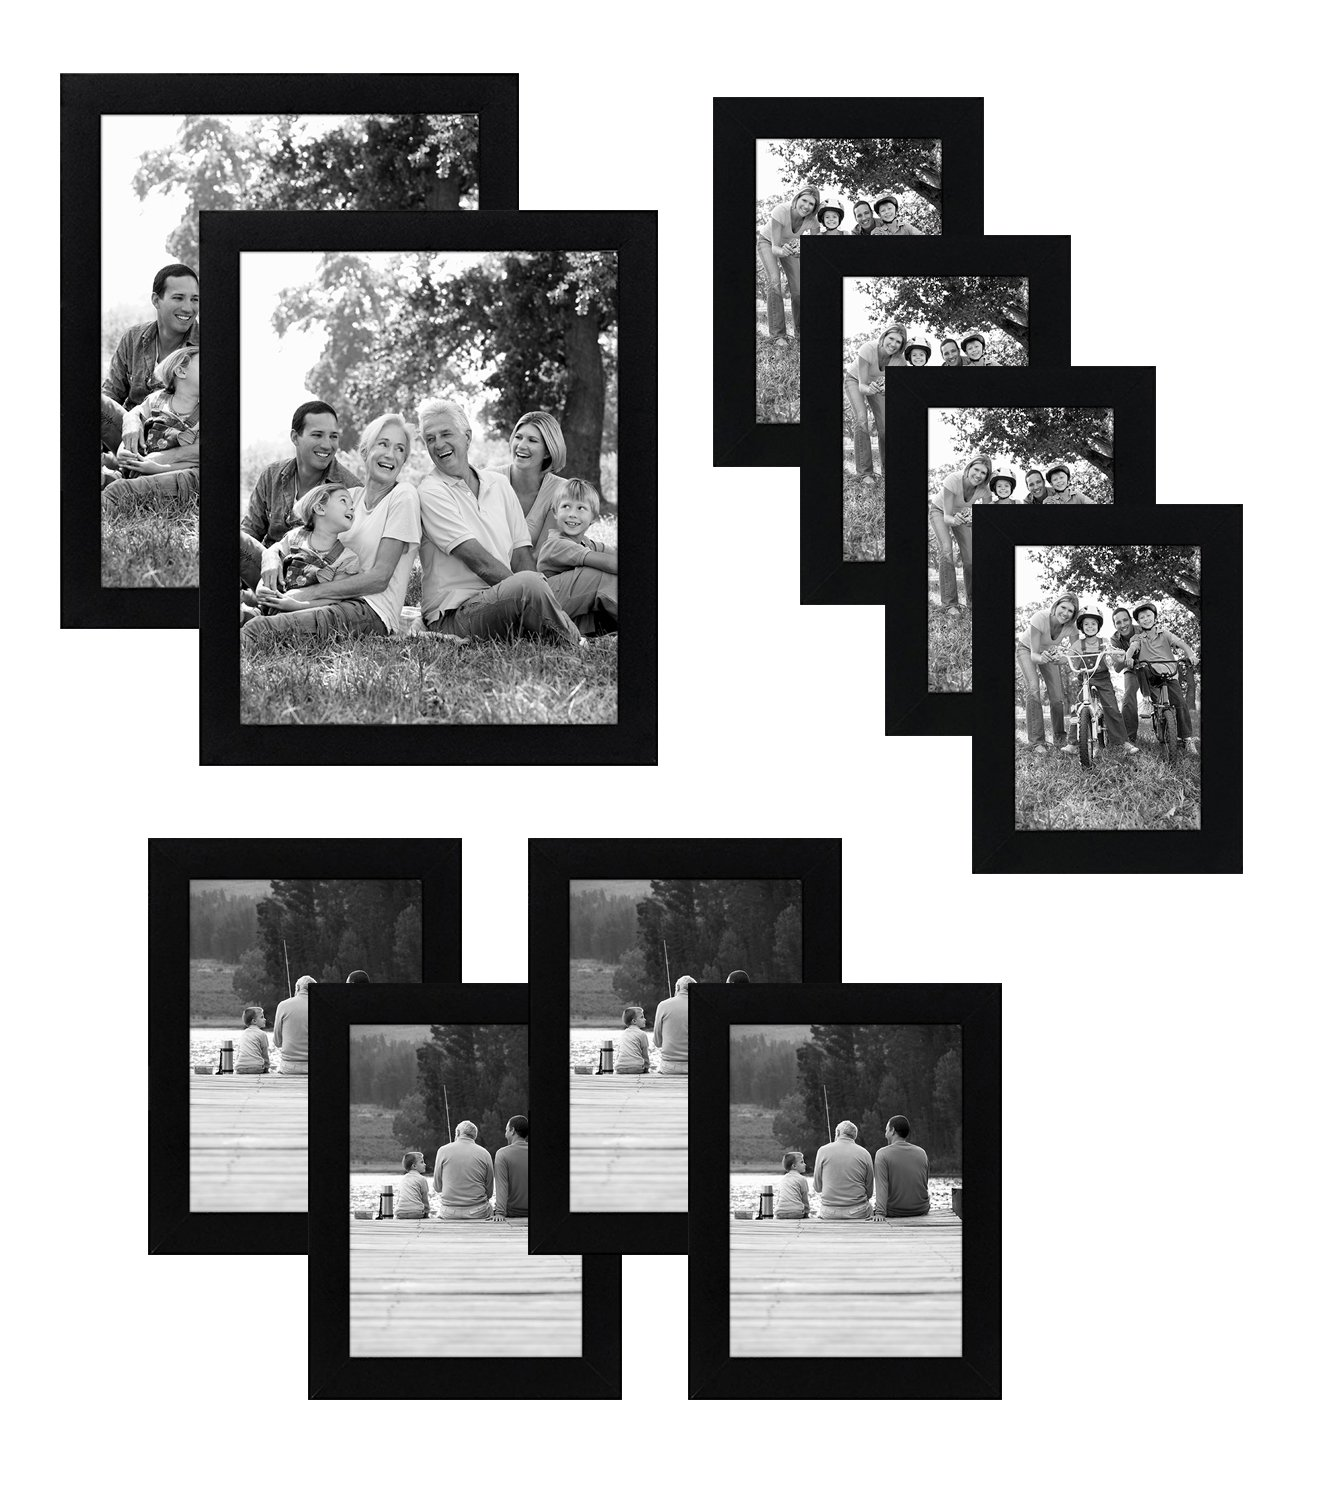 Americanflat 10-Piece Multi Pack Black Frames; Includes Two 8x10 Frames, Four 5x7 Frames, Four 4x6 Frames